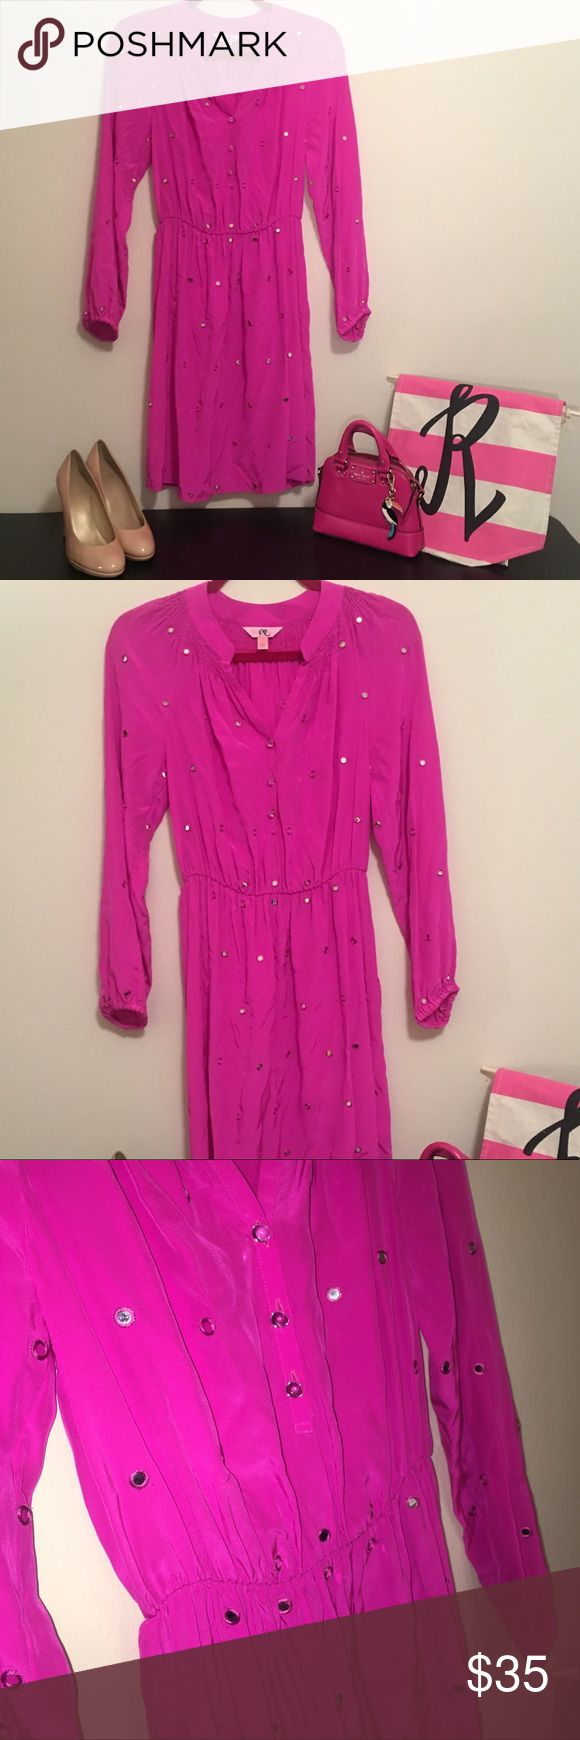 Sparkly Lilly Pulitzer Dress 💕 Sample Item 💕 💕 Sparkle all night long in this gorgeous Lilly dress! 100% silk with mirrored sequins throughout dress. Beautiful cinched waist and long sleeves. Item is marked as PR on the Tag. This is a warehouse sale sample. Size 4 it runs true to size. 💕 Smoke free, Pup friendly home. Items ship within 3 days or sooner! Check out my other Lilly items. bundles and reasonable offers welcome! Lilly Pulitzer Dresses